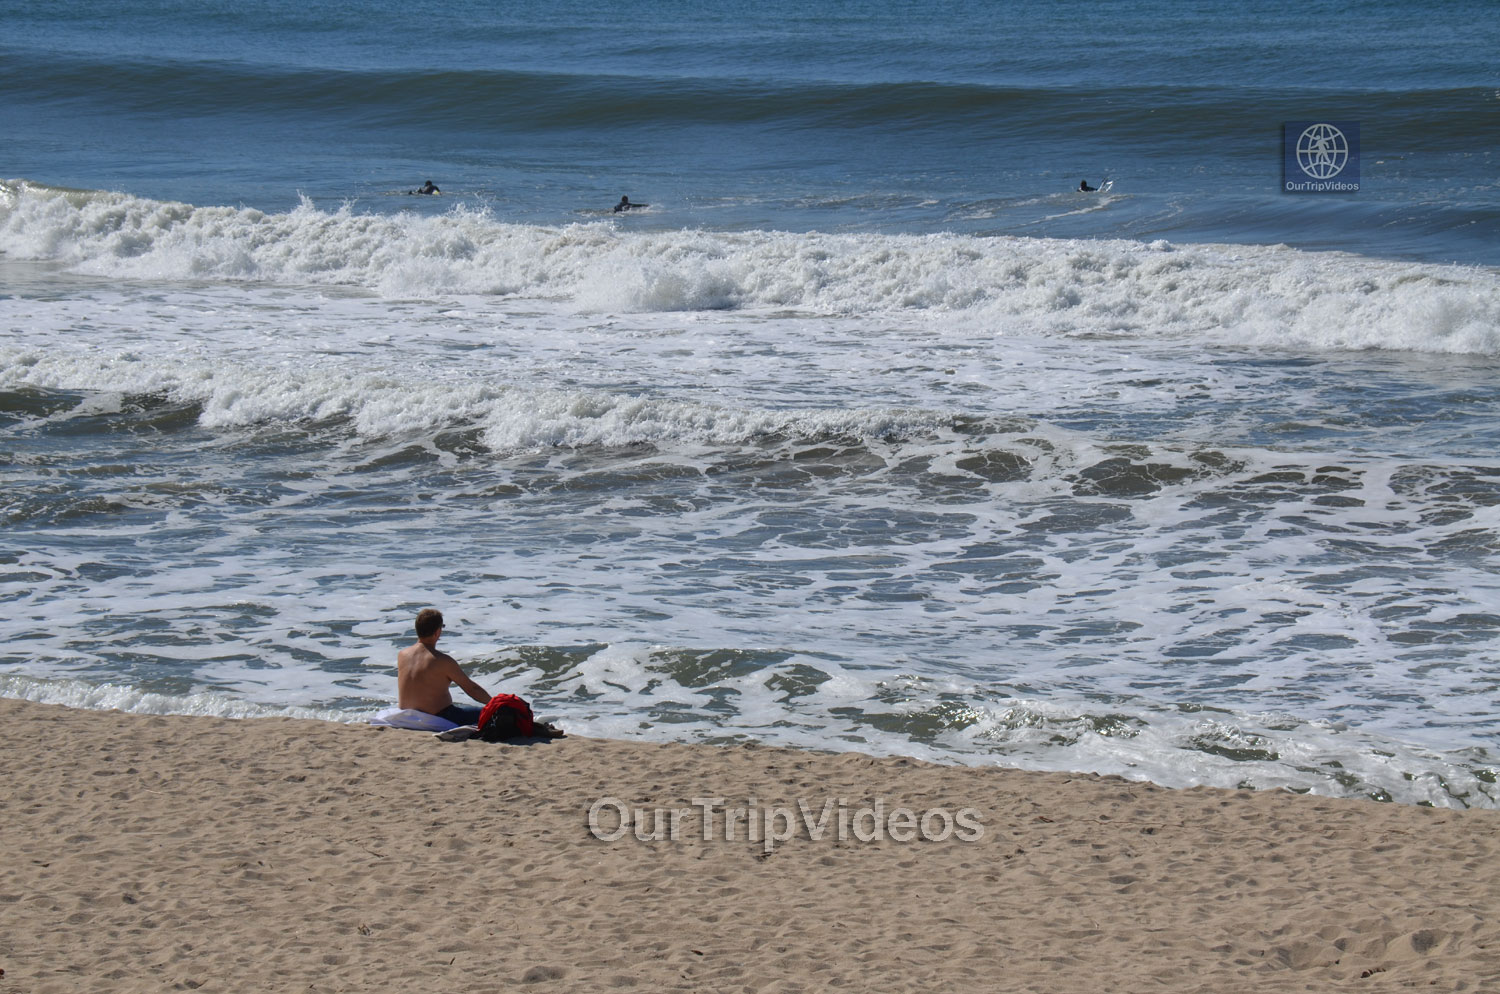 State Beach(Francis Beach), Half Moon Bay, CA, USA - Picture 19 of 25